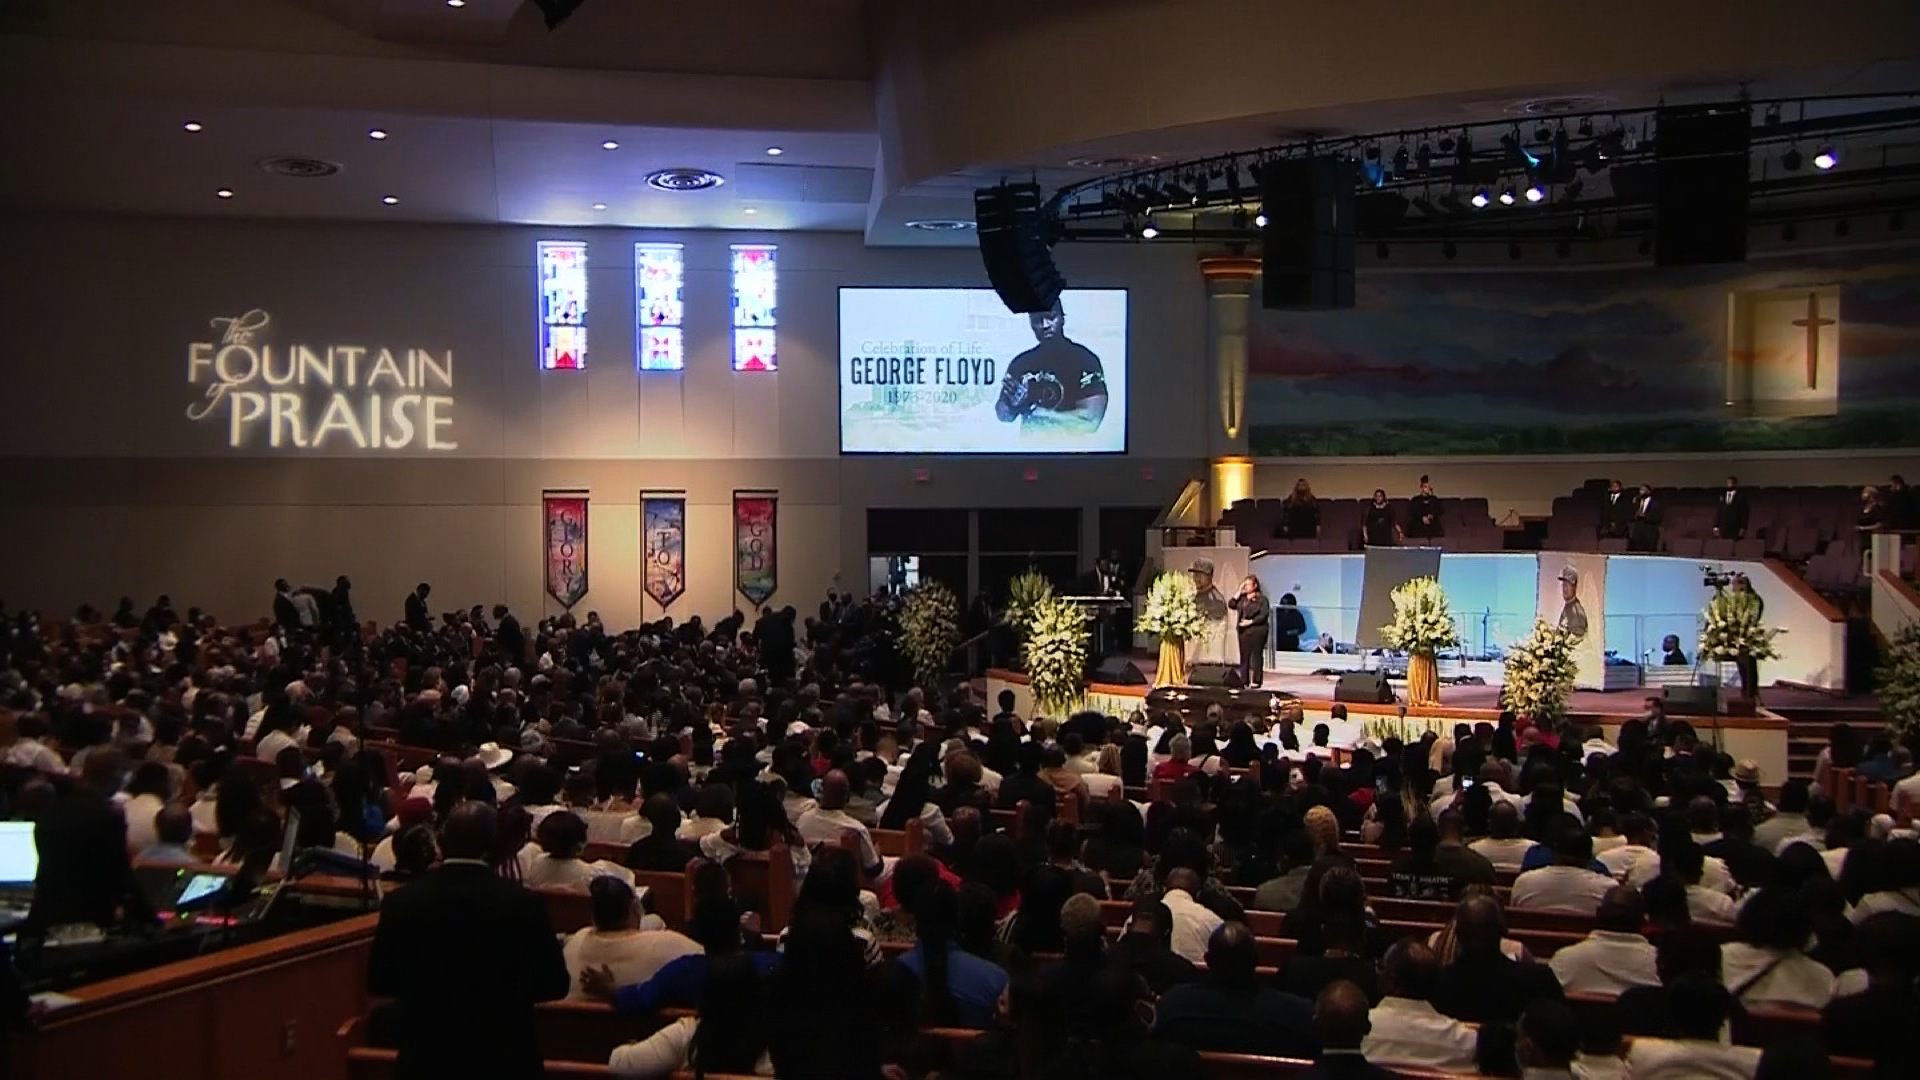 Mourners gather at a funeral for George Floyd in Houston at The Fountain of Praise Church on June 9.